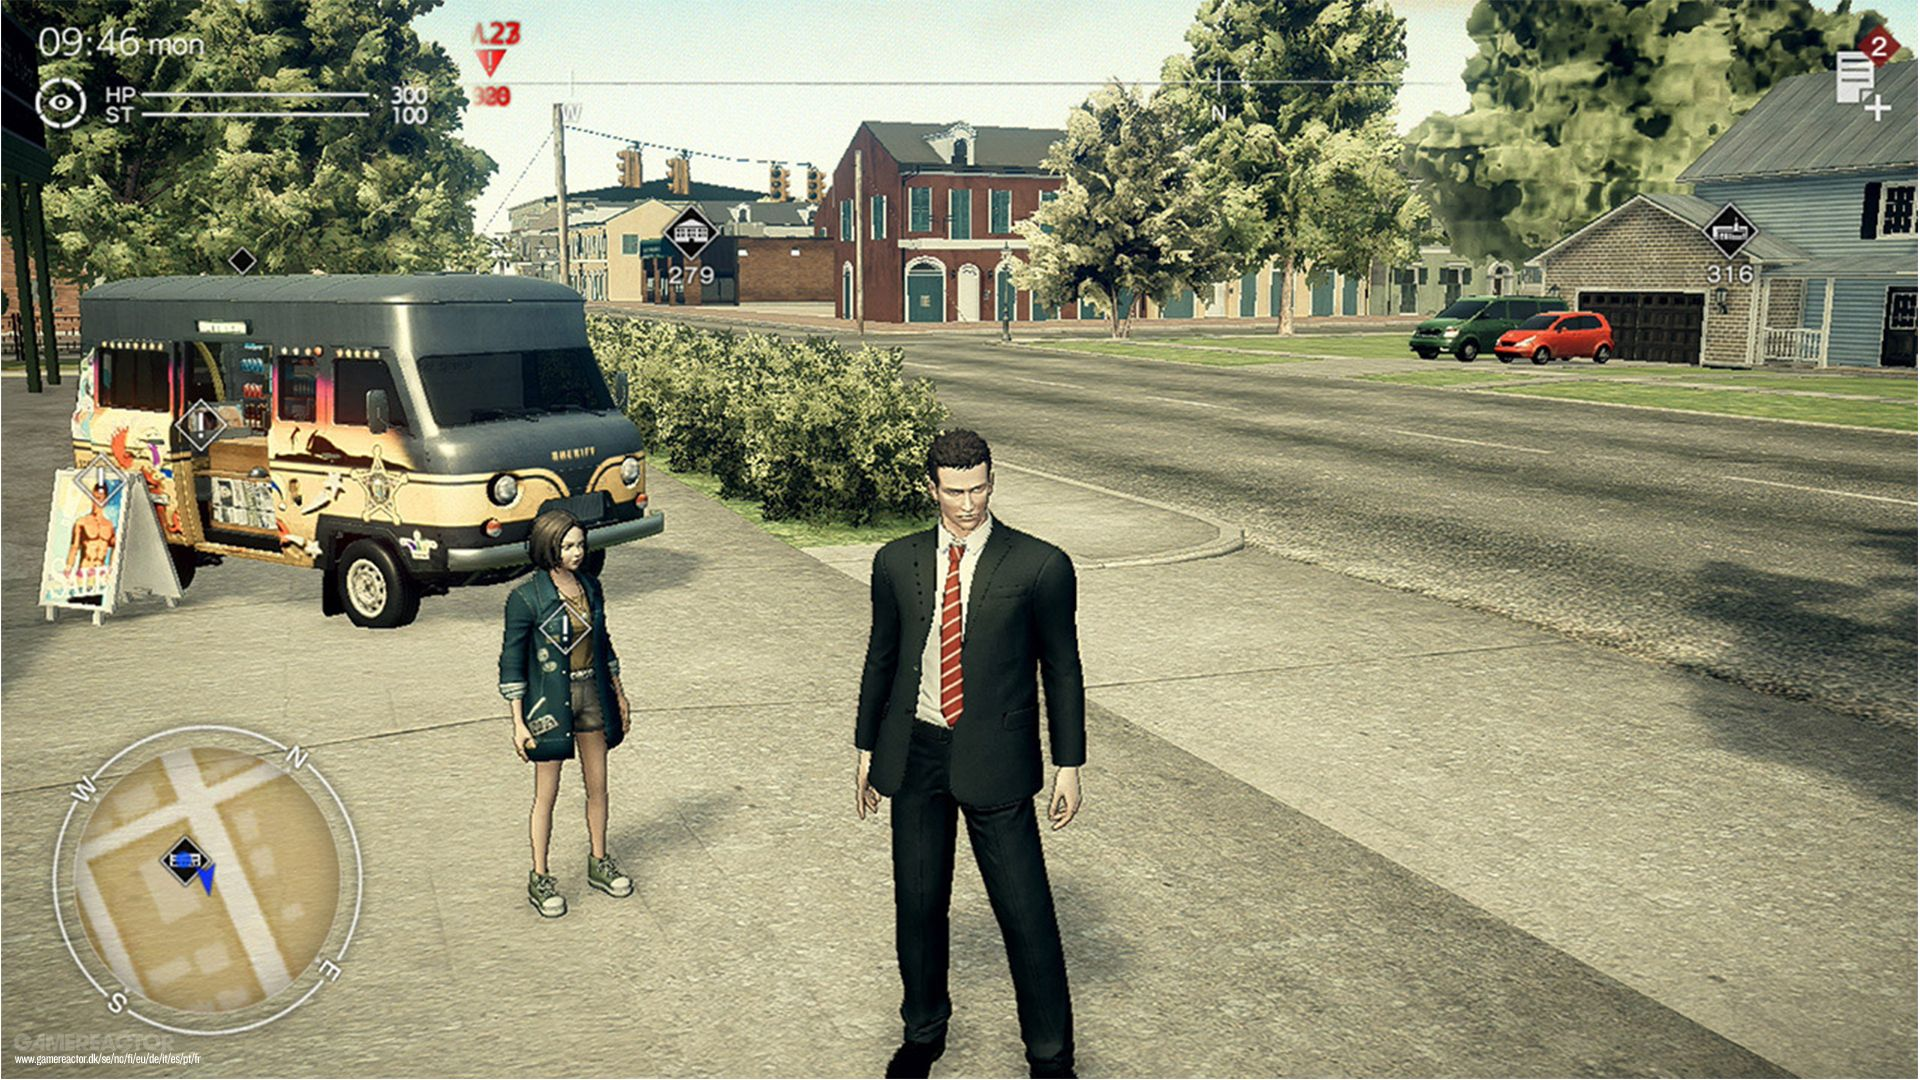 Deadly Premonition 2 A Blessing in Disguise releasing in July 1920x1080